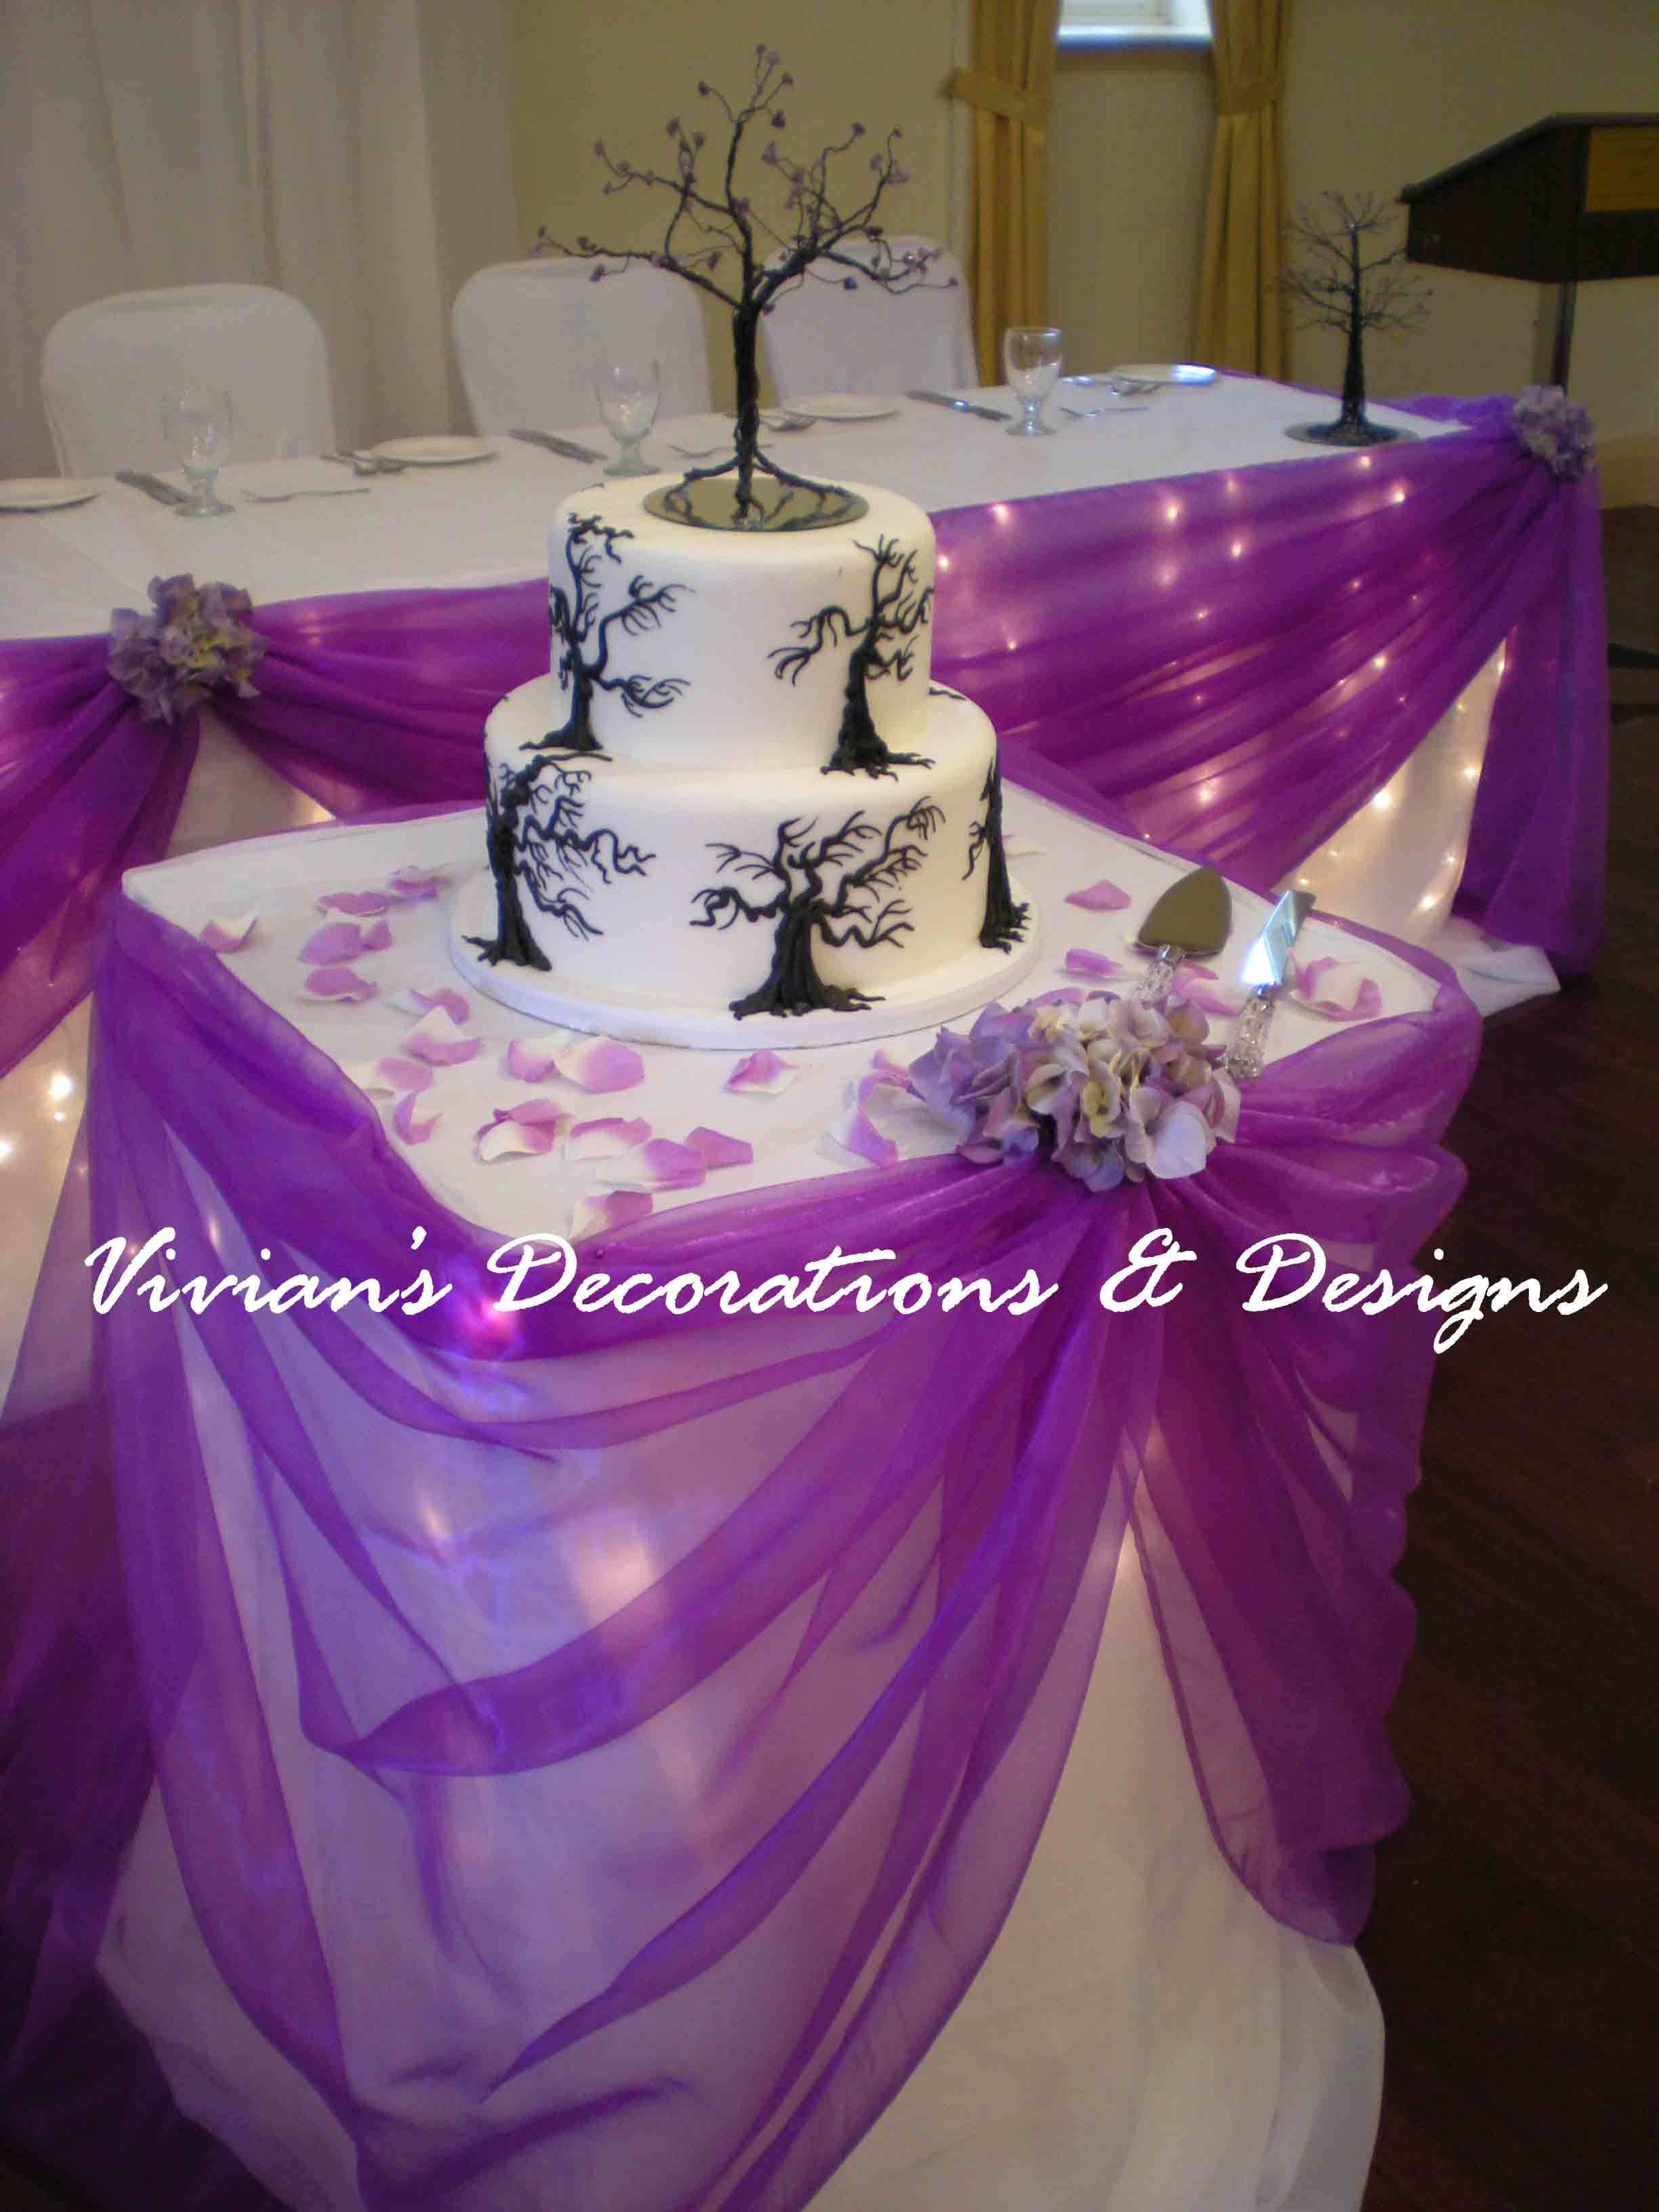 vendors vivians decorations amp designs project wedding. Black Bedroom Furniture Sets. Home Design Ideas